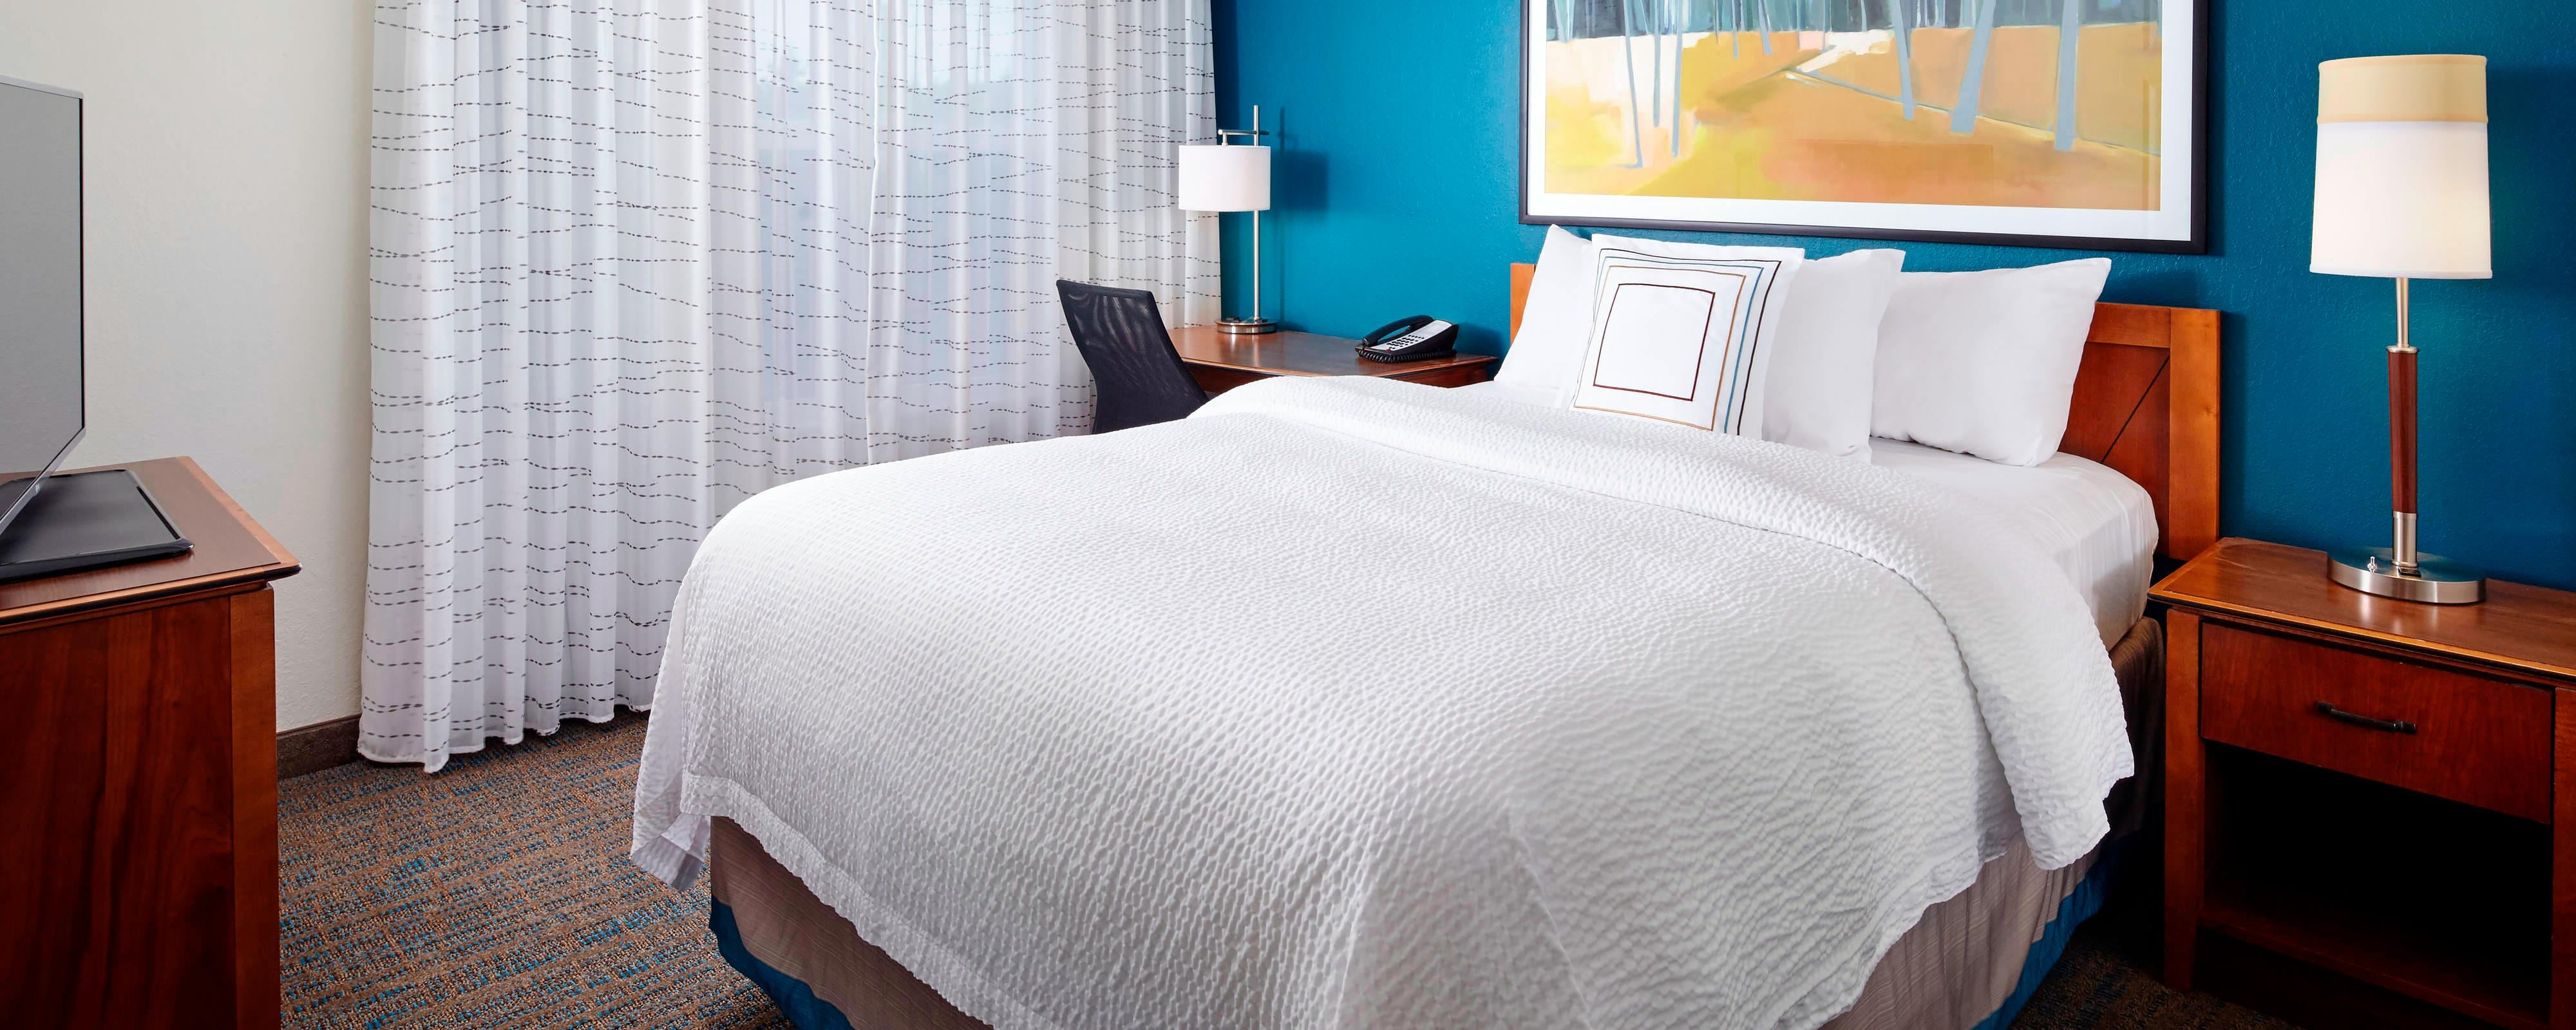 Residence Inn St. Louis/Airport Guest Room